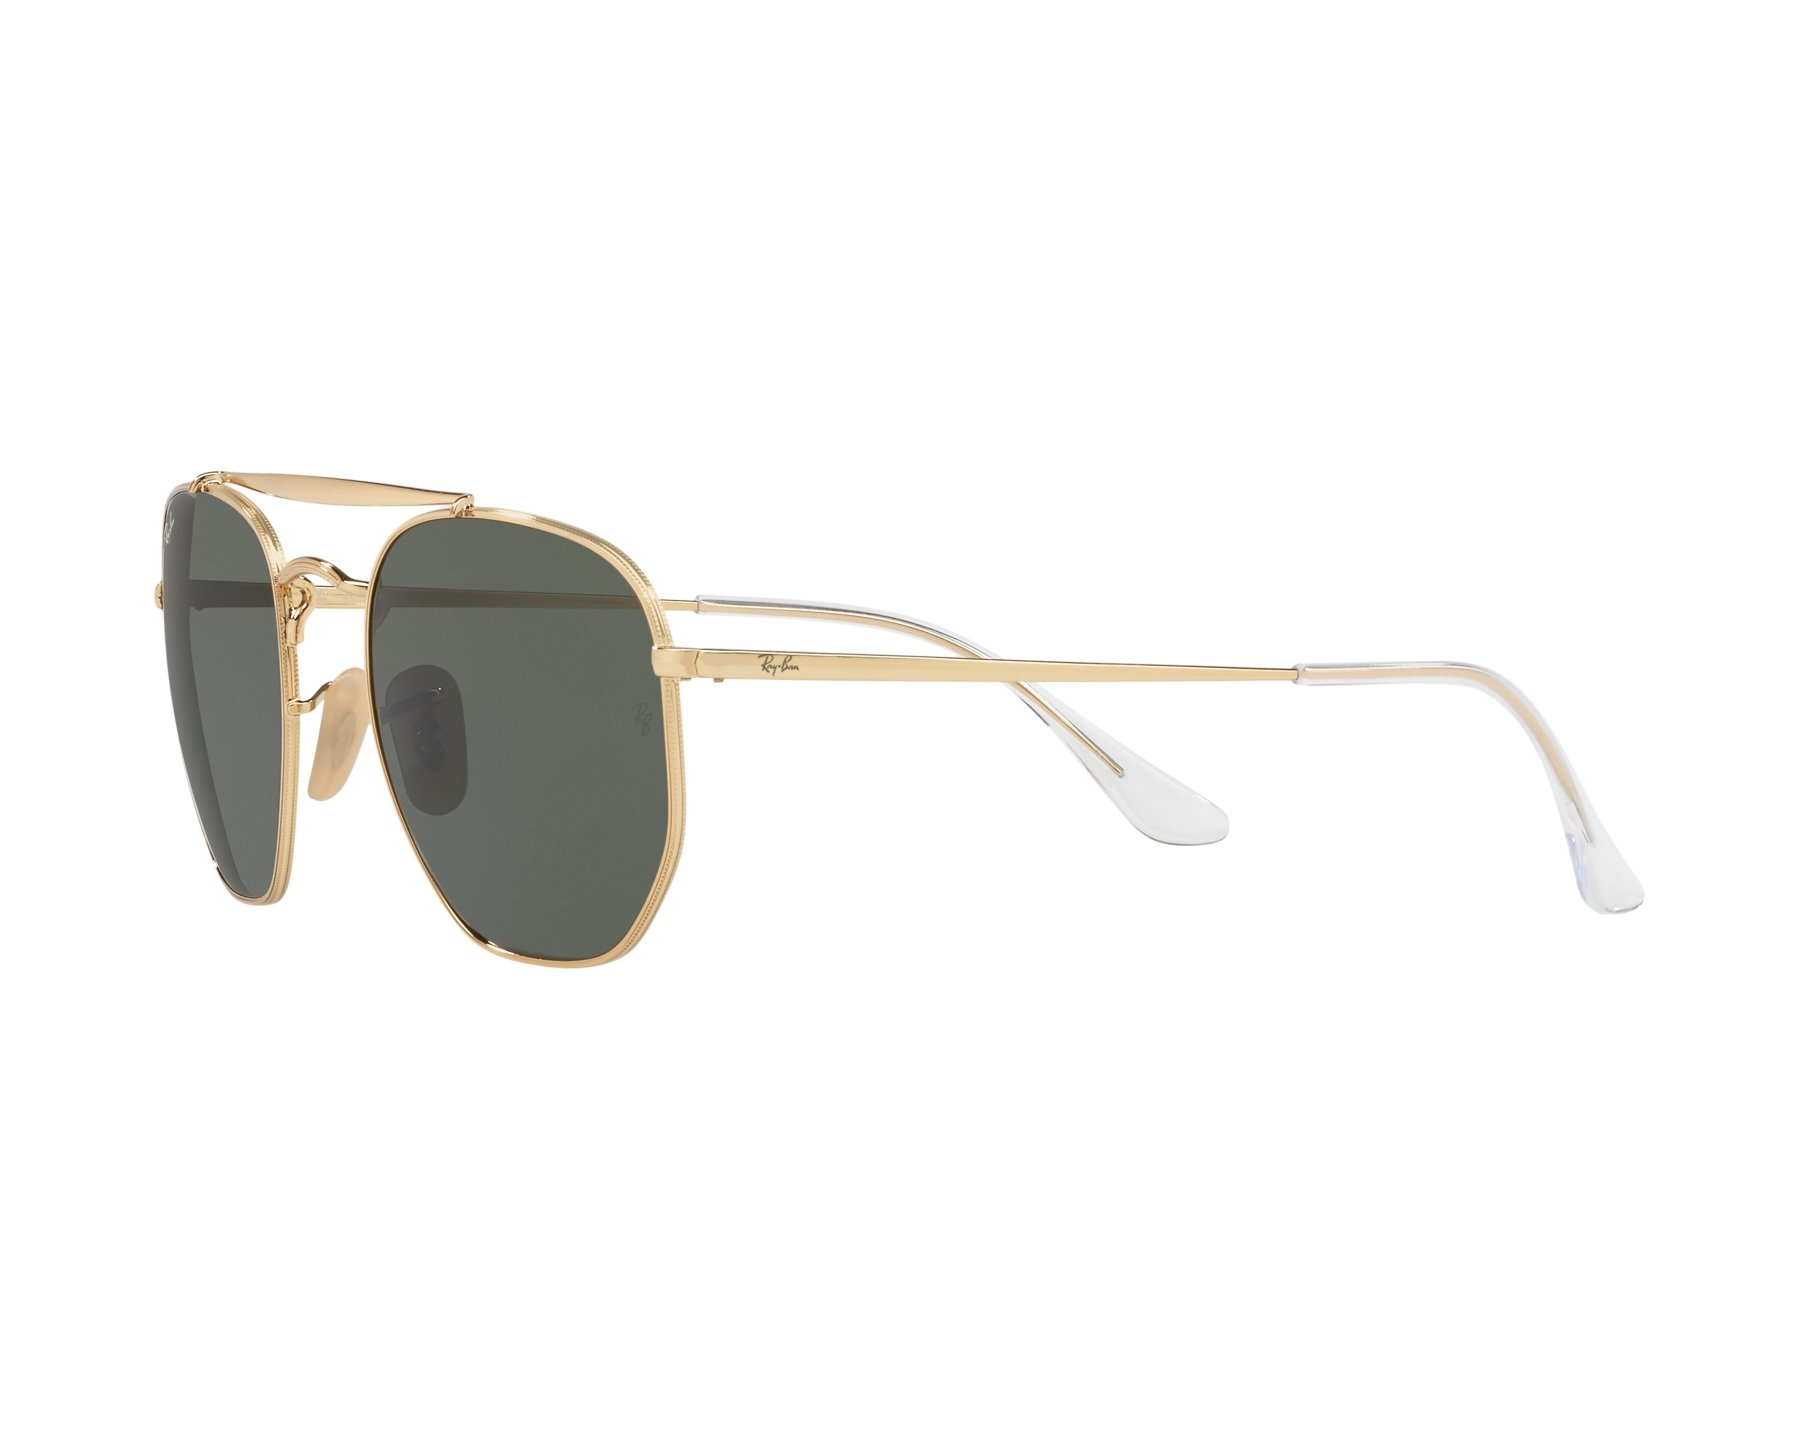 Lunettes de soleil Ray-Ban RB-3648 001 54-21 Or 02fa77104641